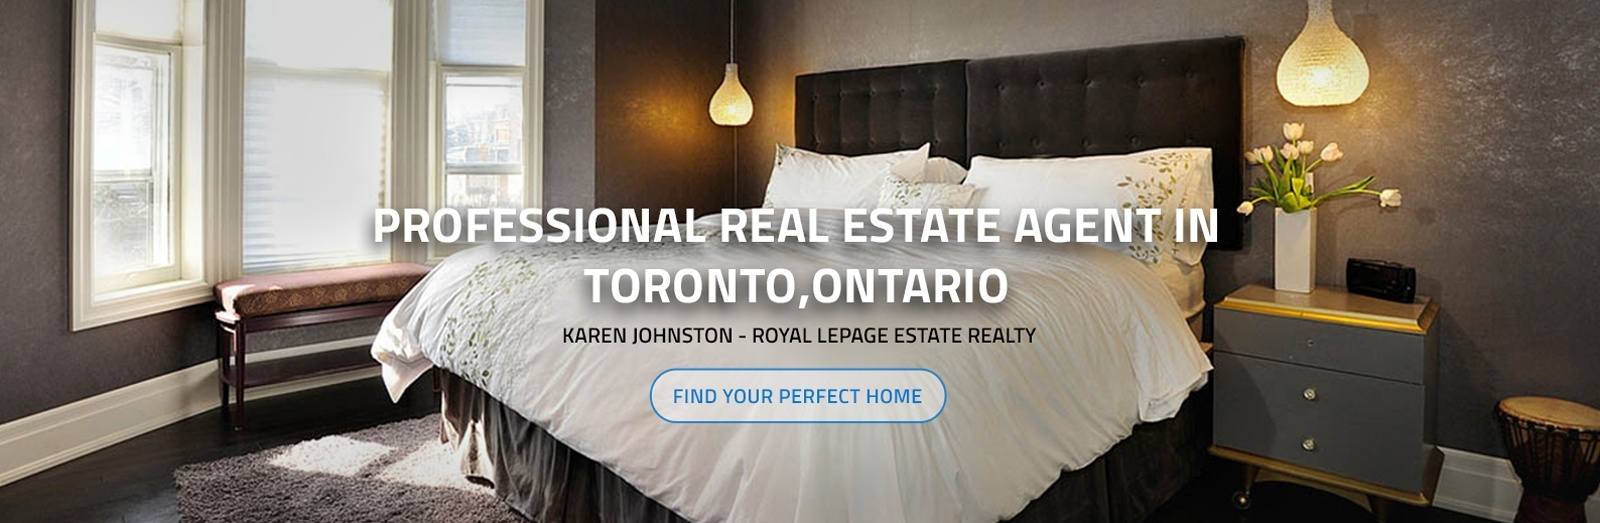 real estate agent Toronto Ontario